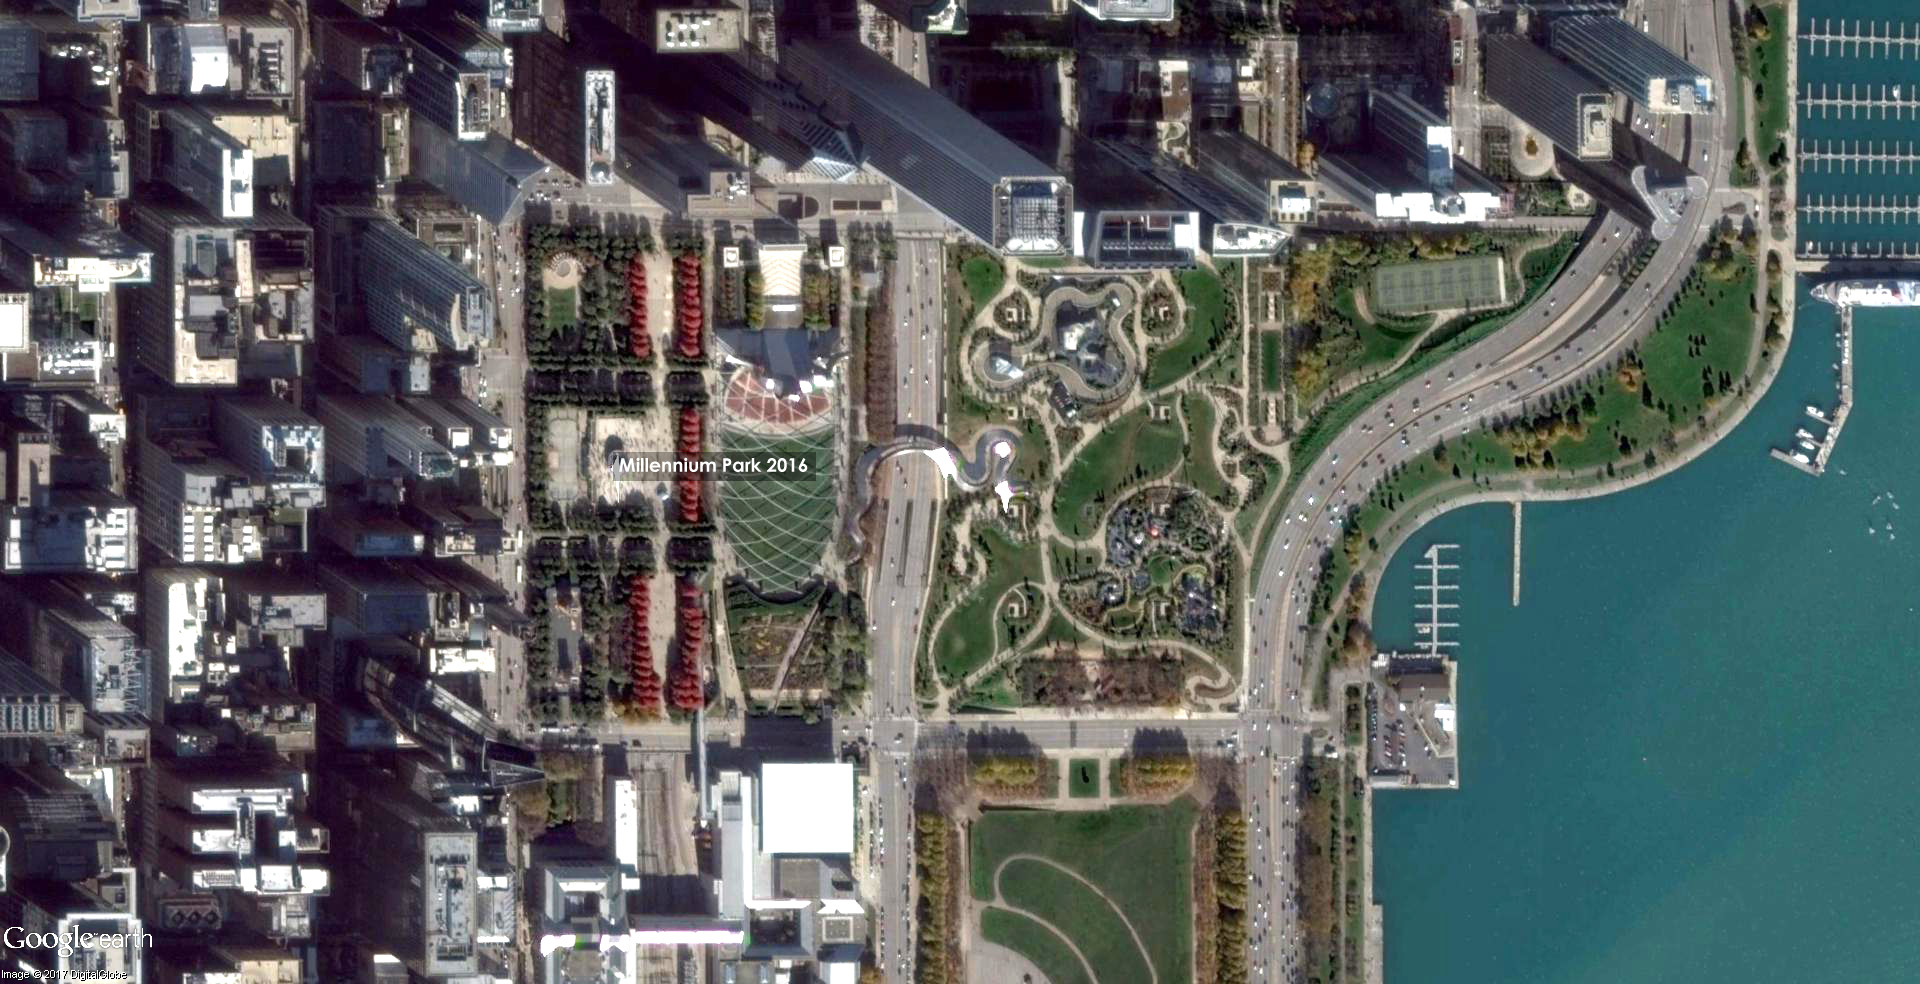 Millennium Park 2016   Source: Google Earth